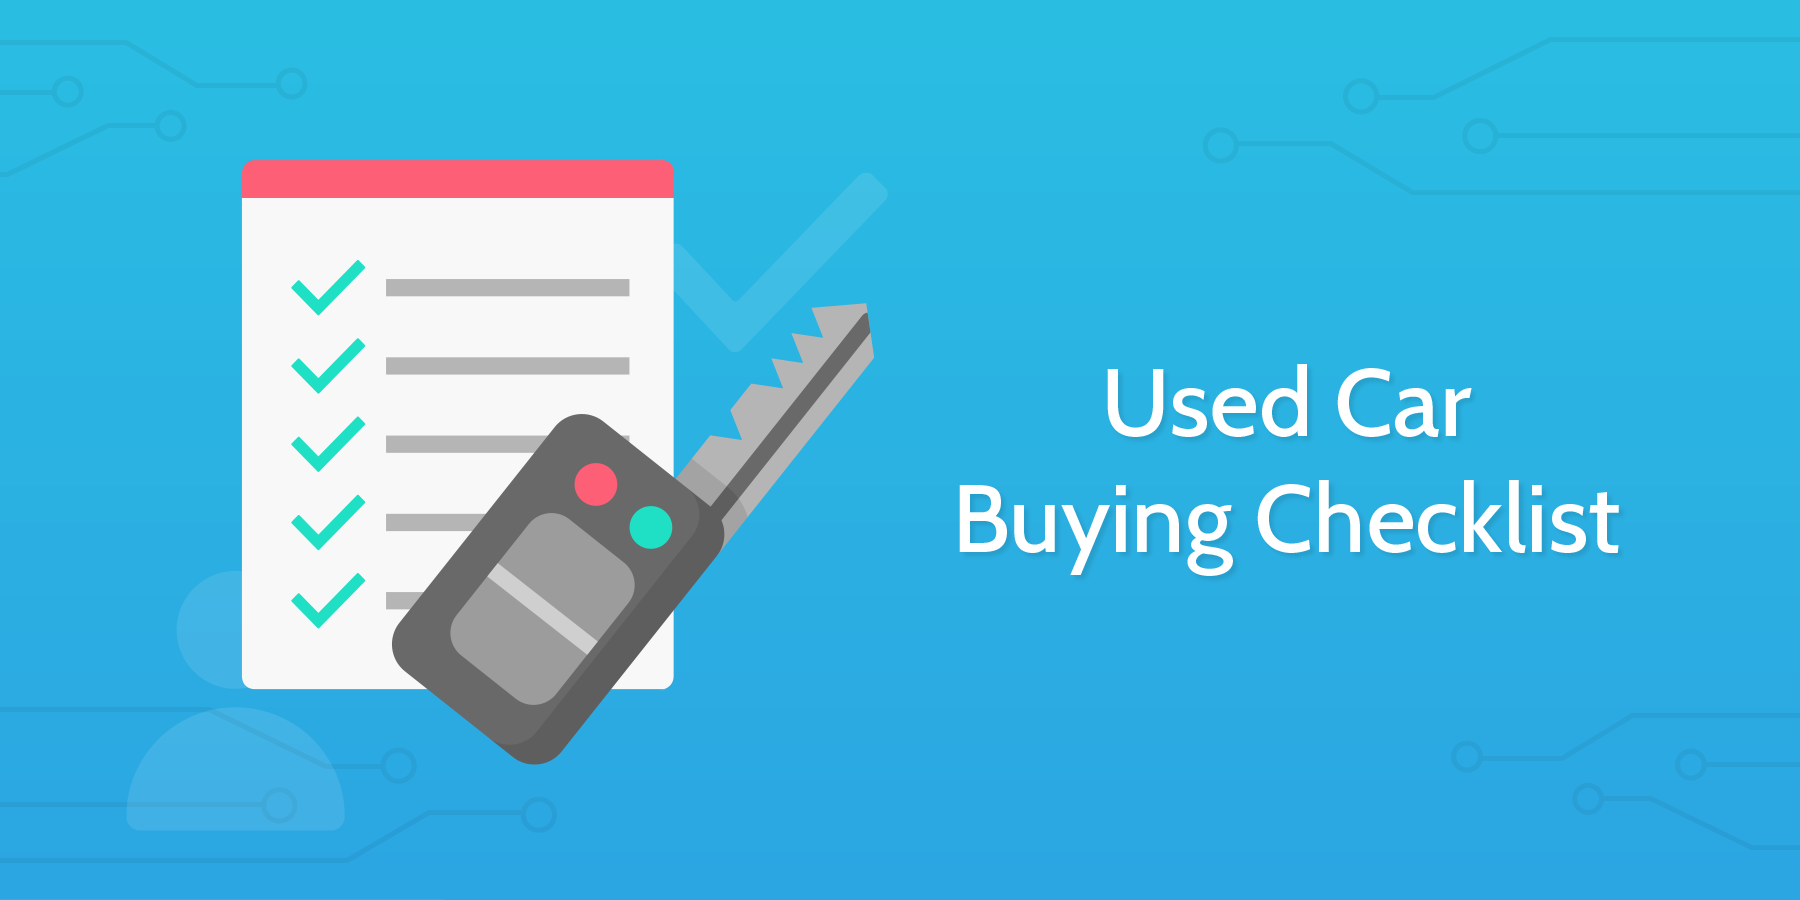 Used Car Buying Checklist >> Introduction To Used Car Buying Checklist Process Street